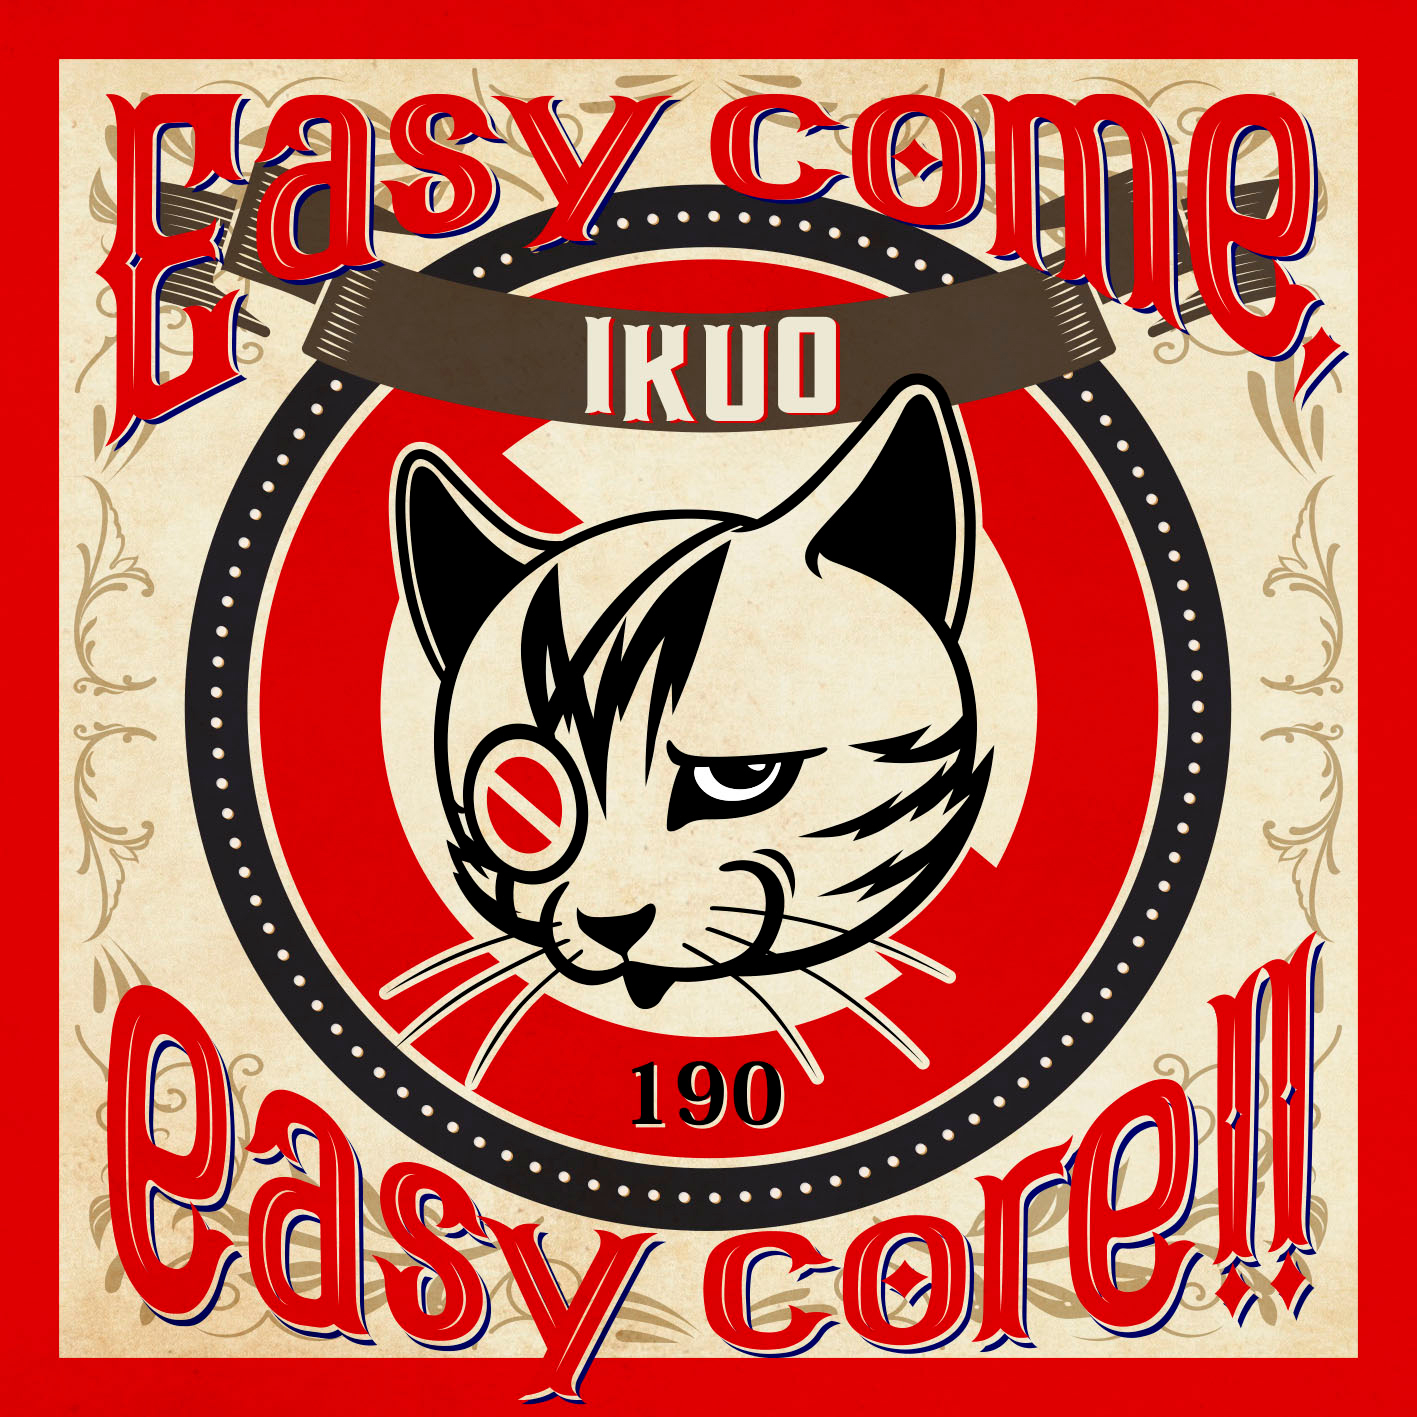 IKUO『Easy come, easy core!!』